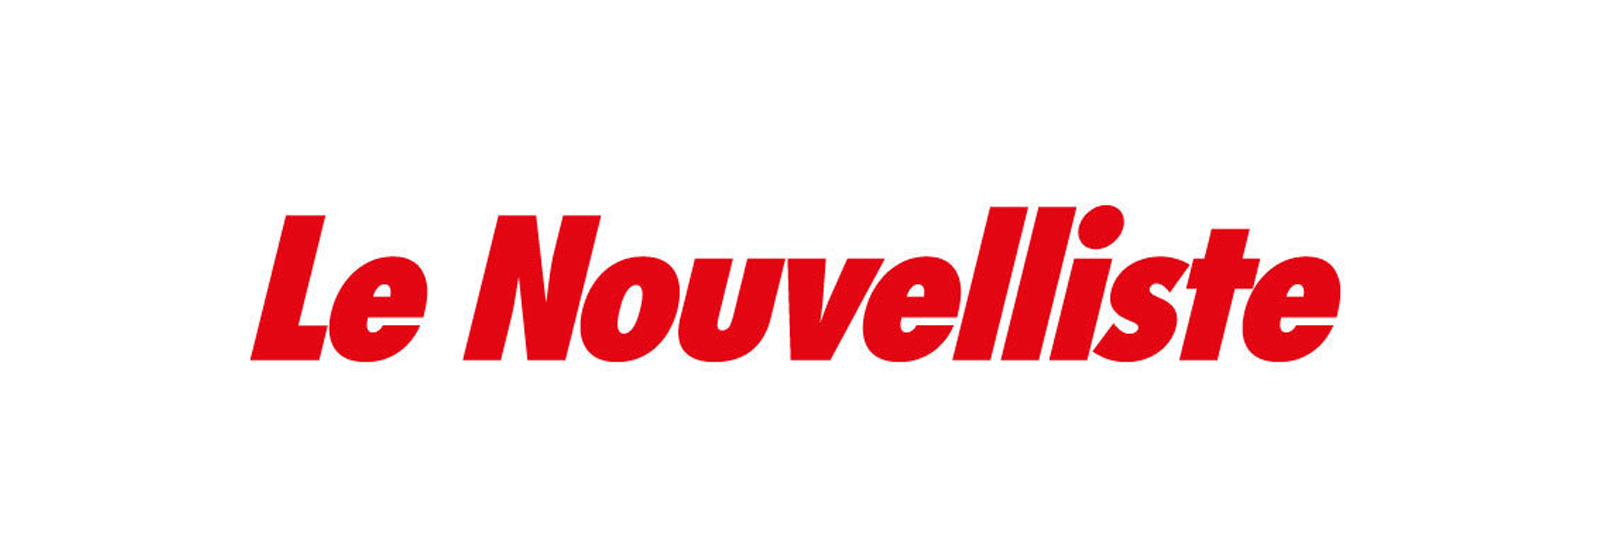 """Le Nouvelliste"" takes stock of a training that is not easy."